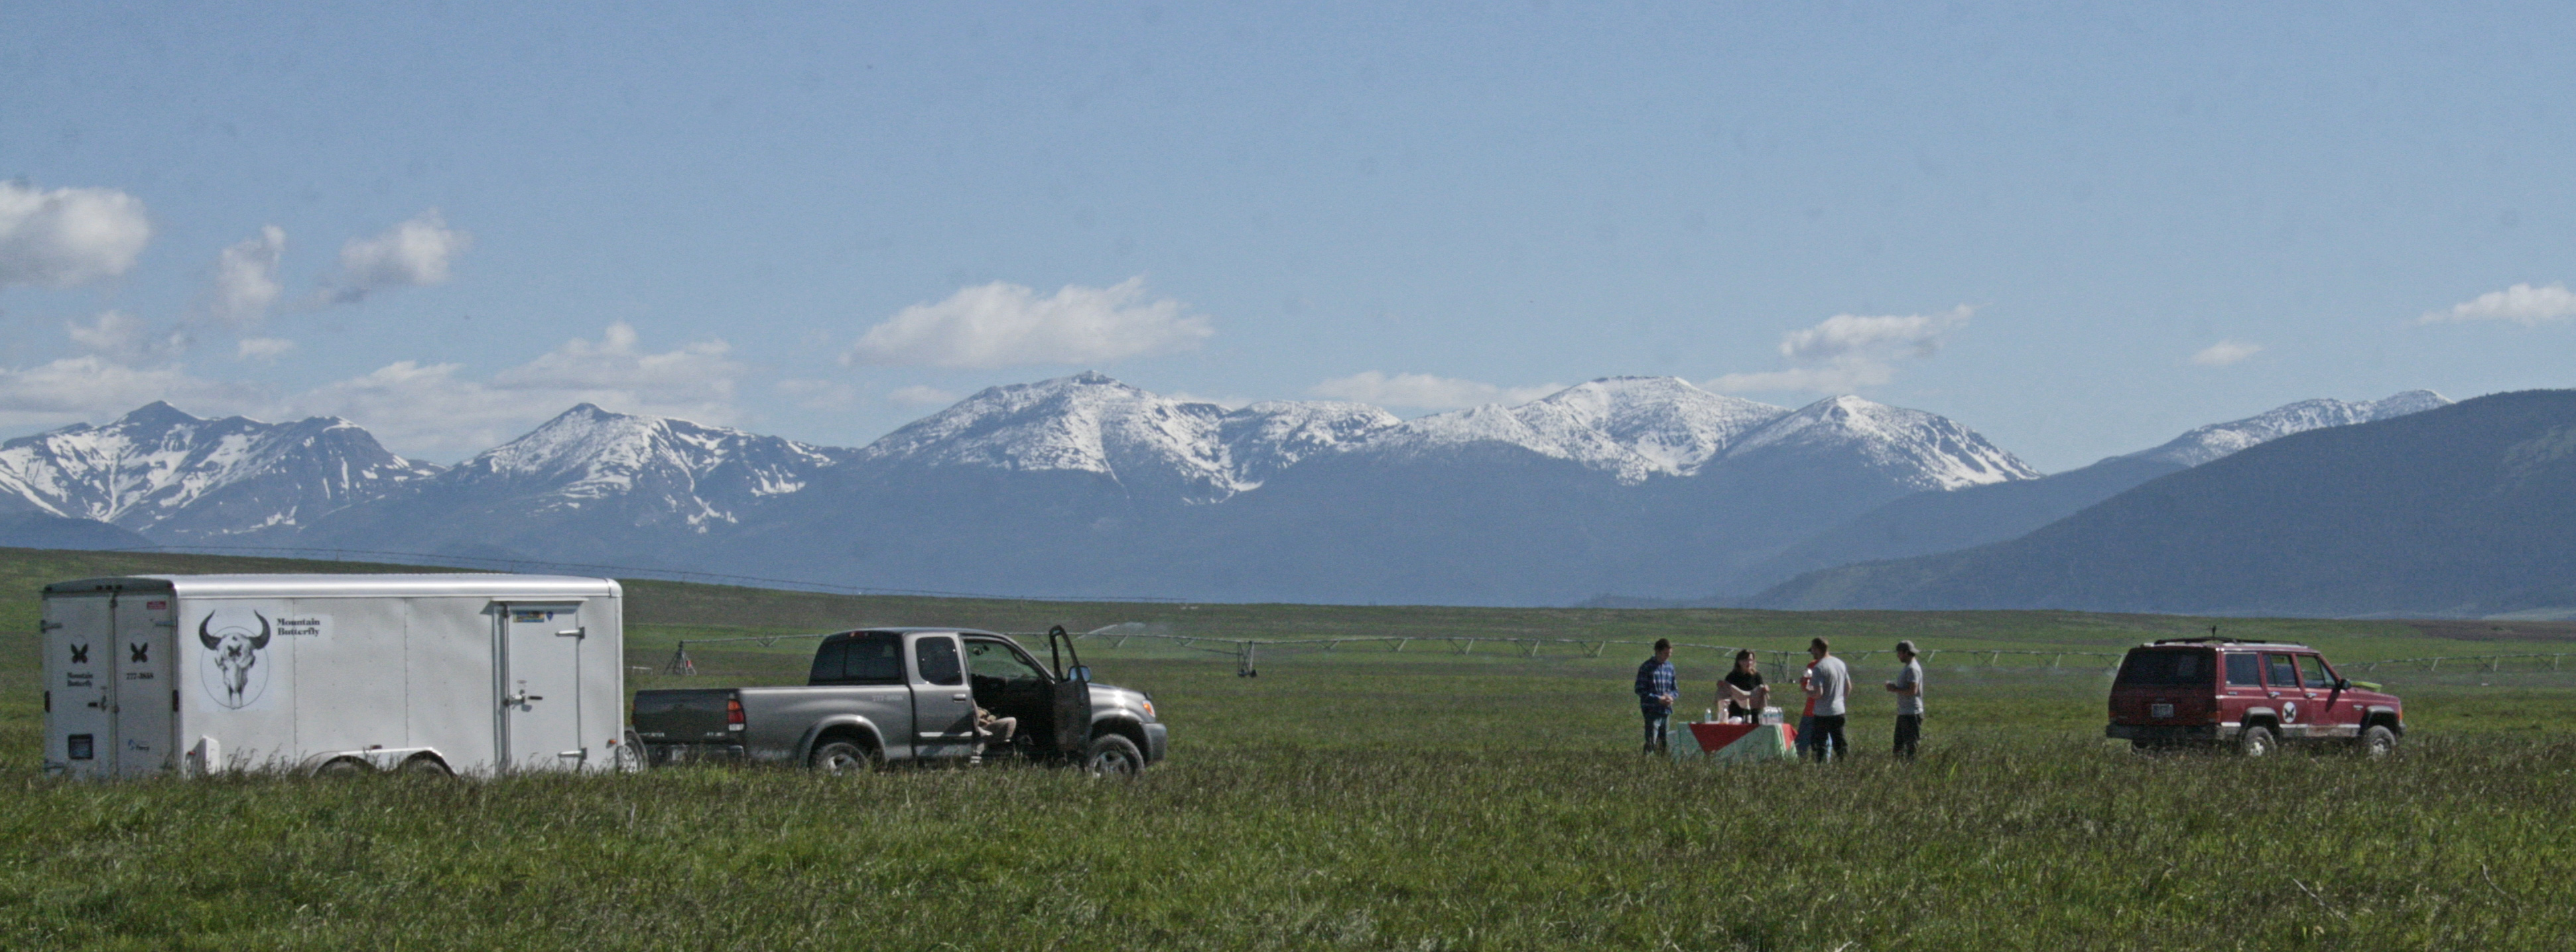 Southern boundary of The Bob Marshall Wilderness in the background.